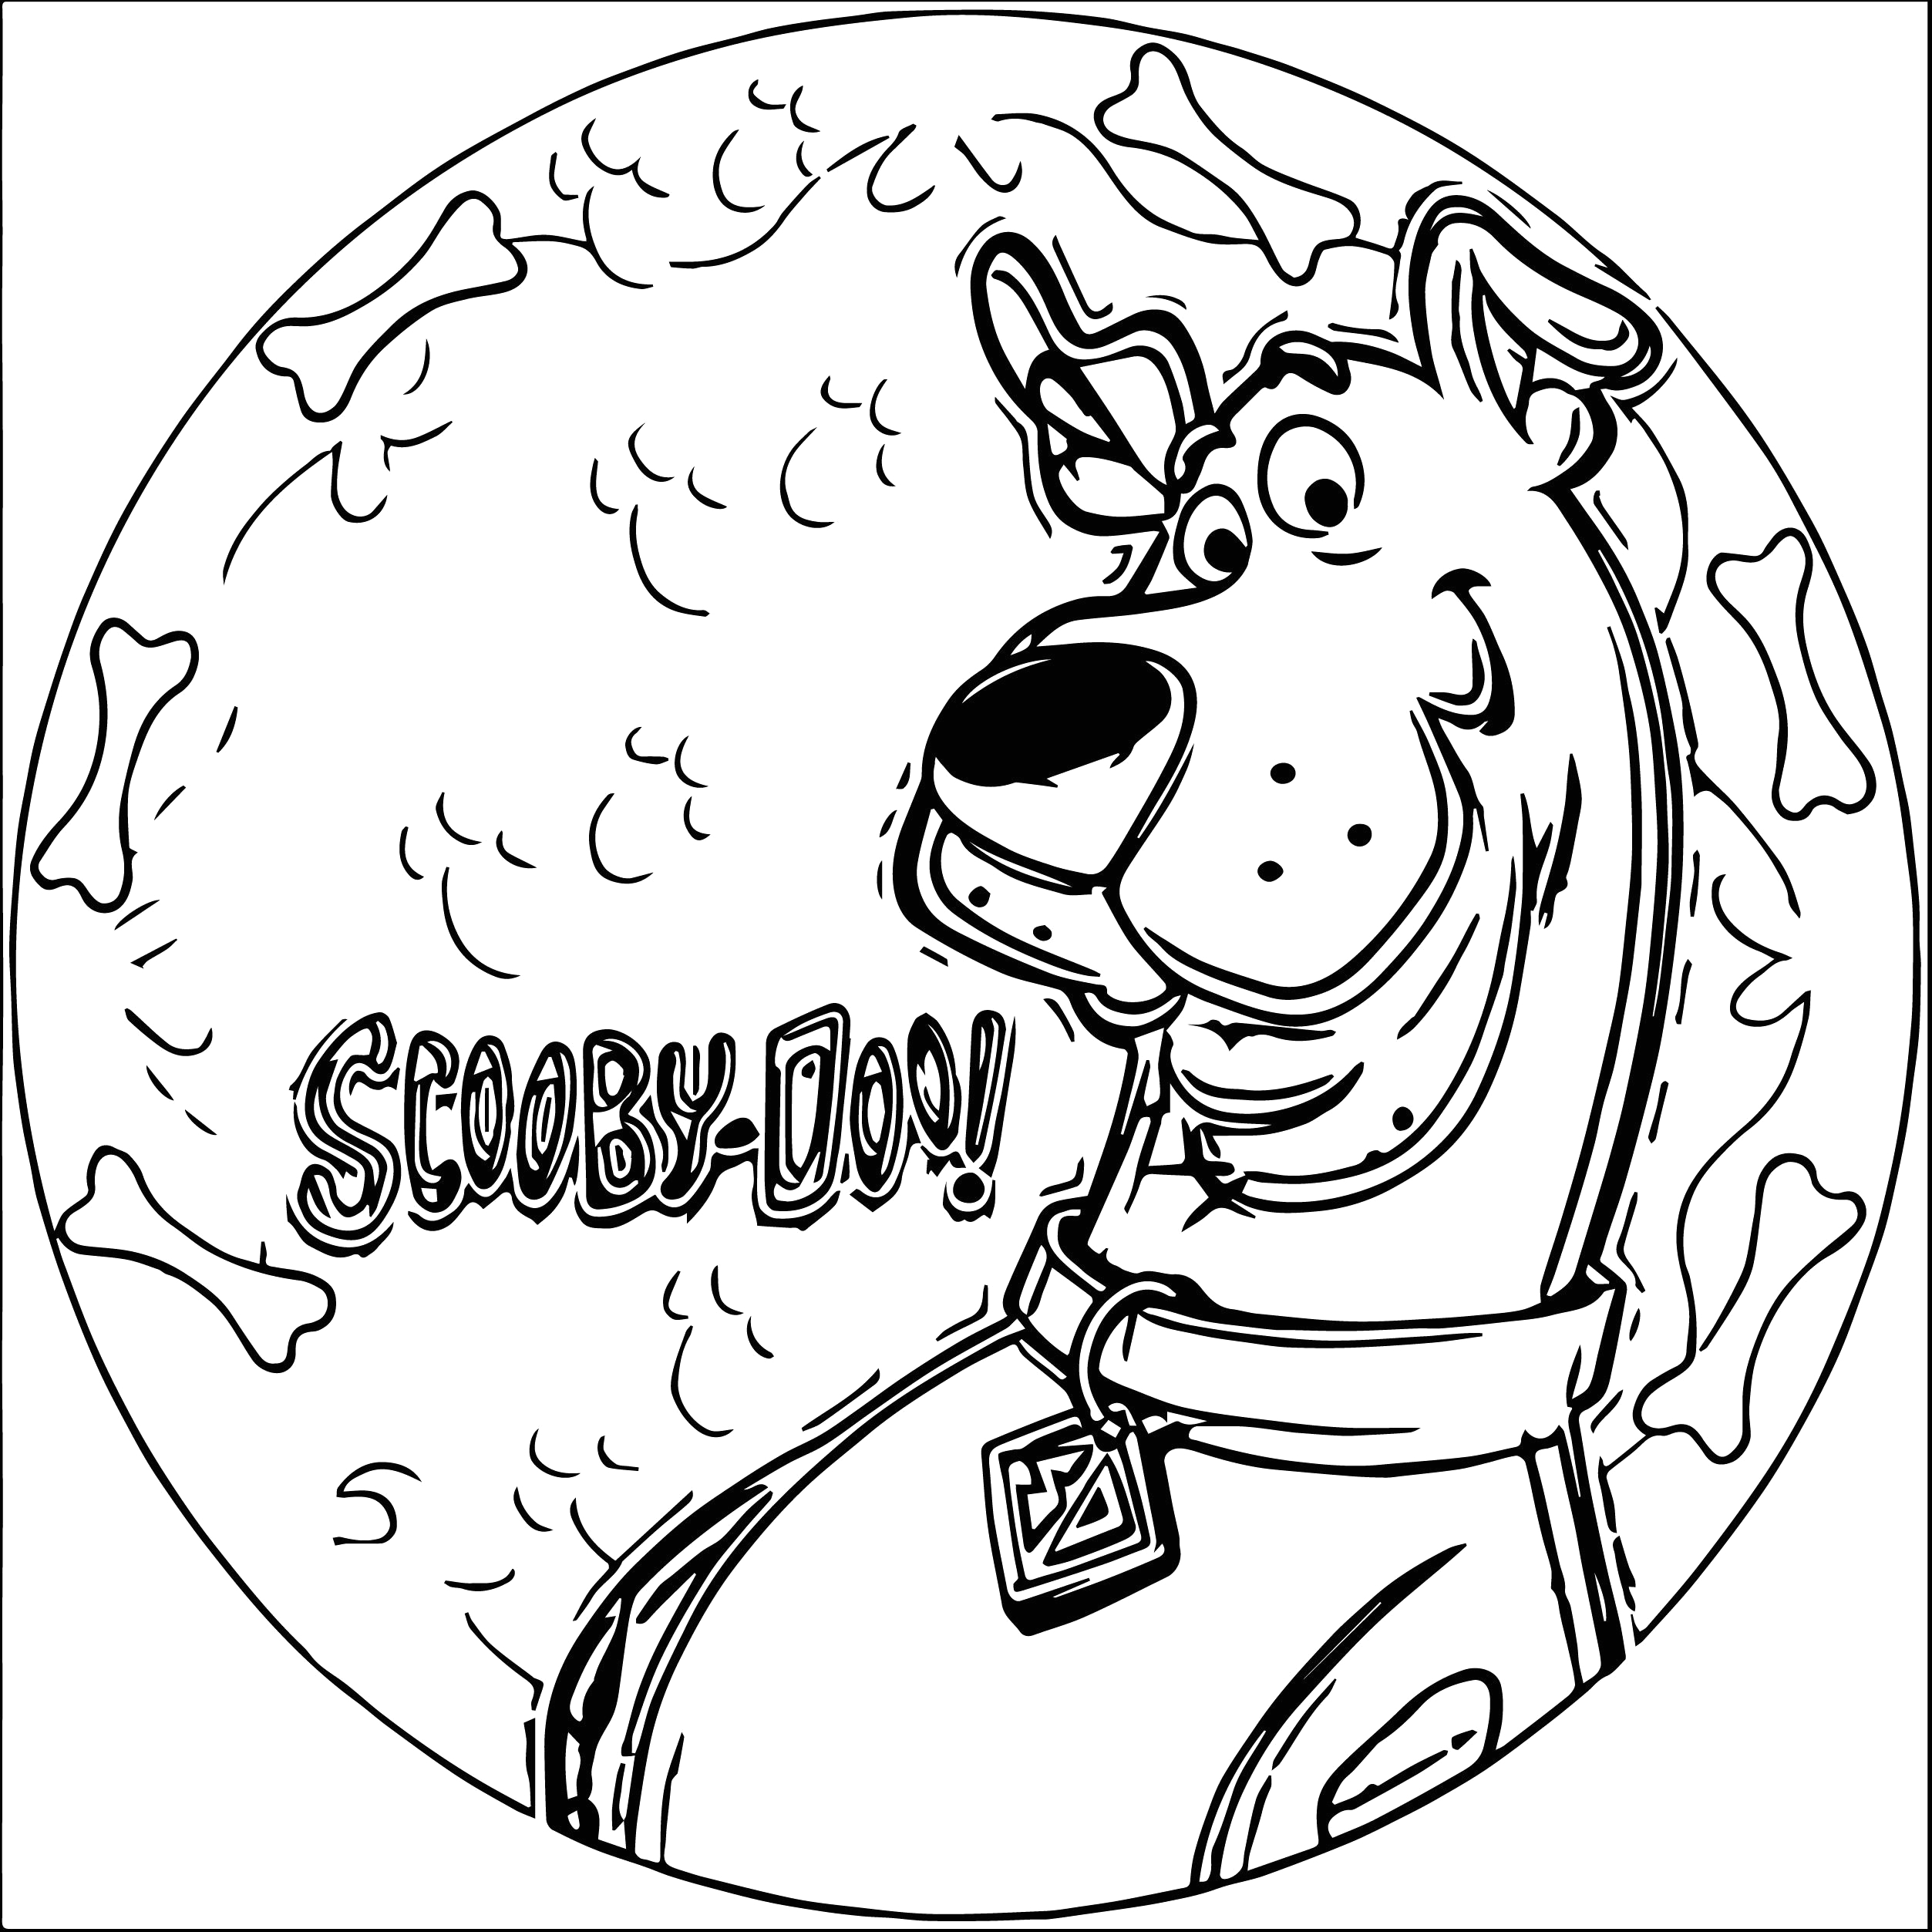 scooby doo christmas coloring pages